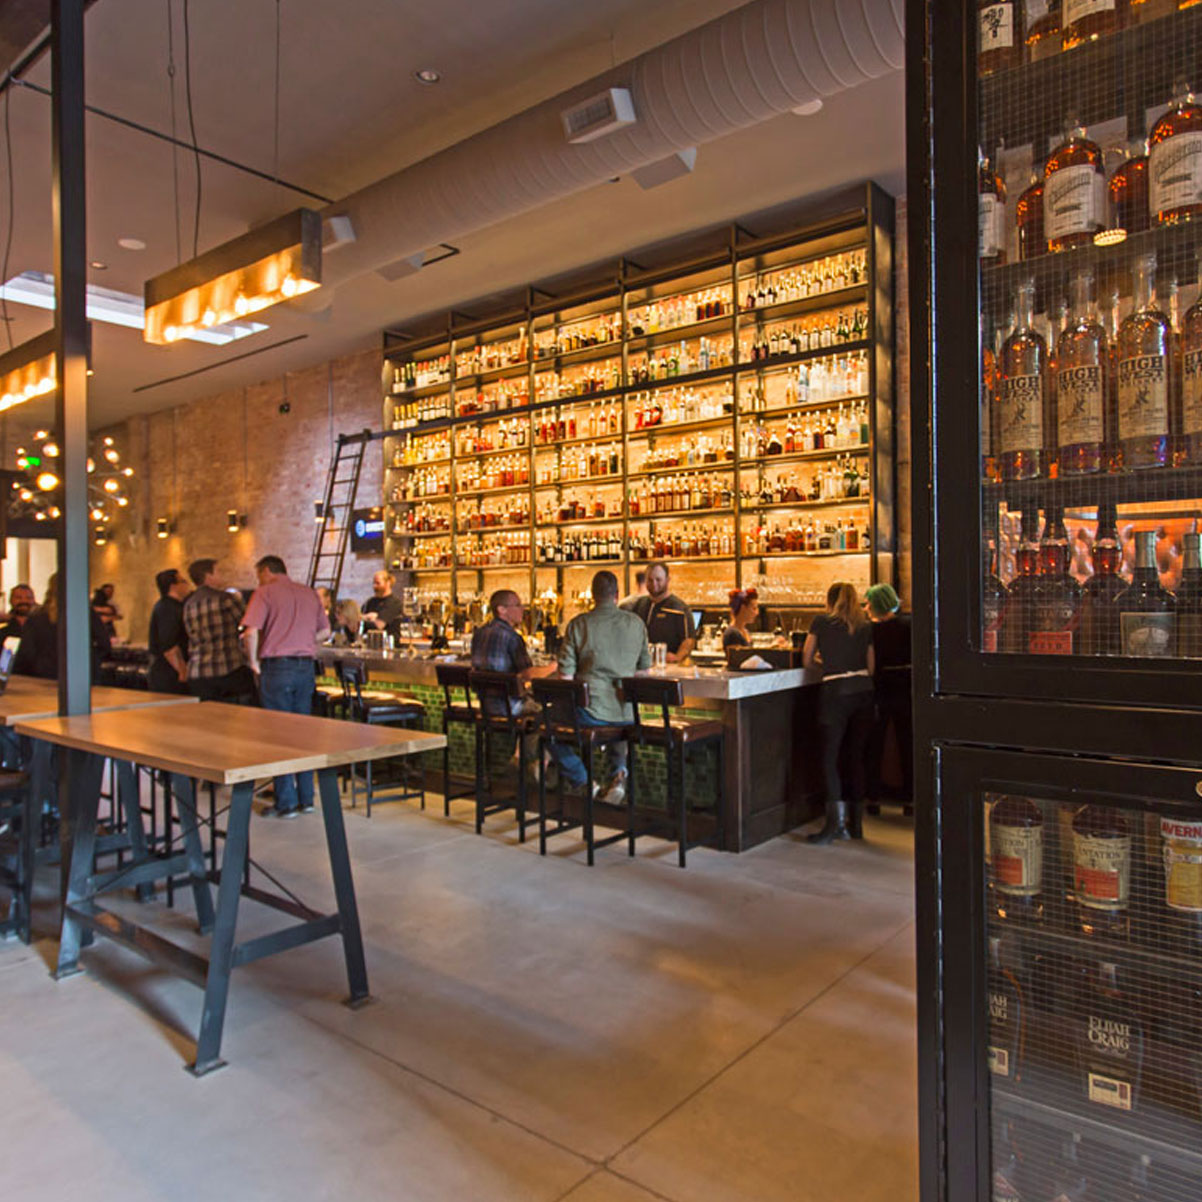 White Horse small plates bar restaurant by Bourbon Group